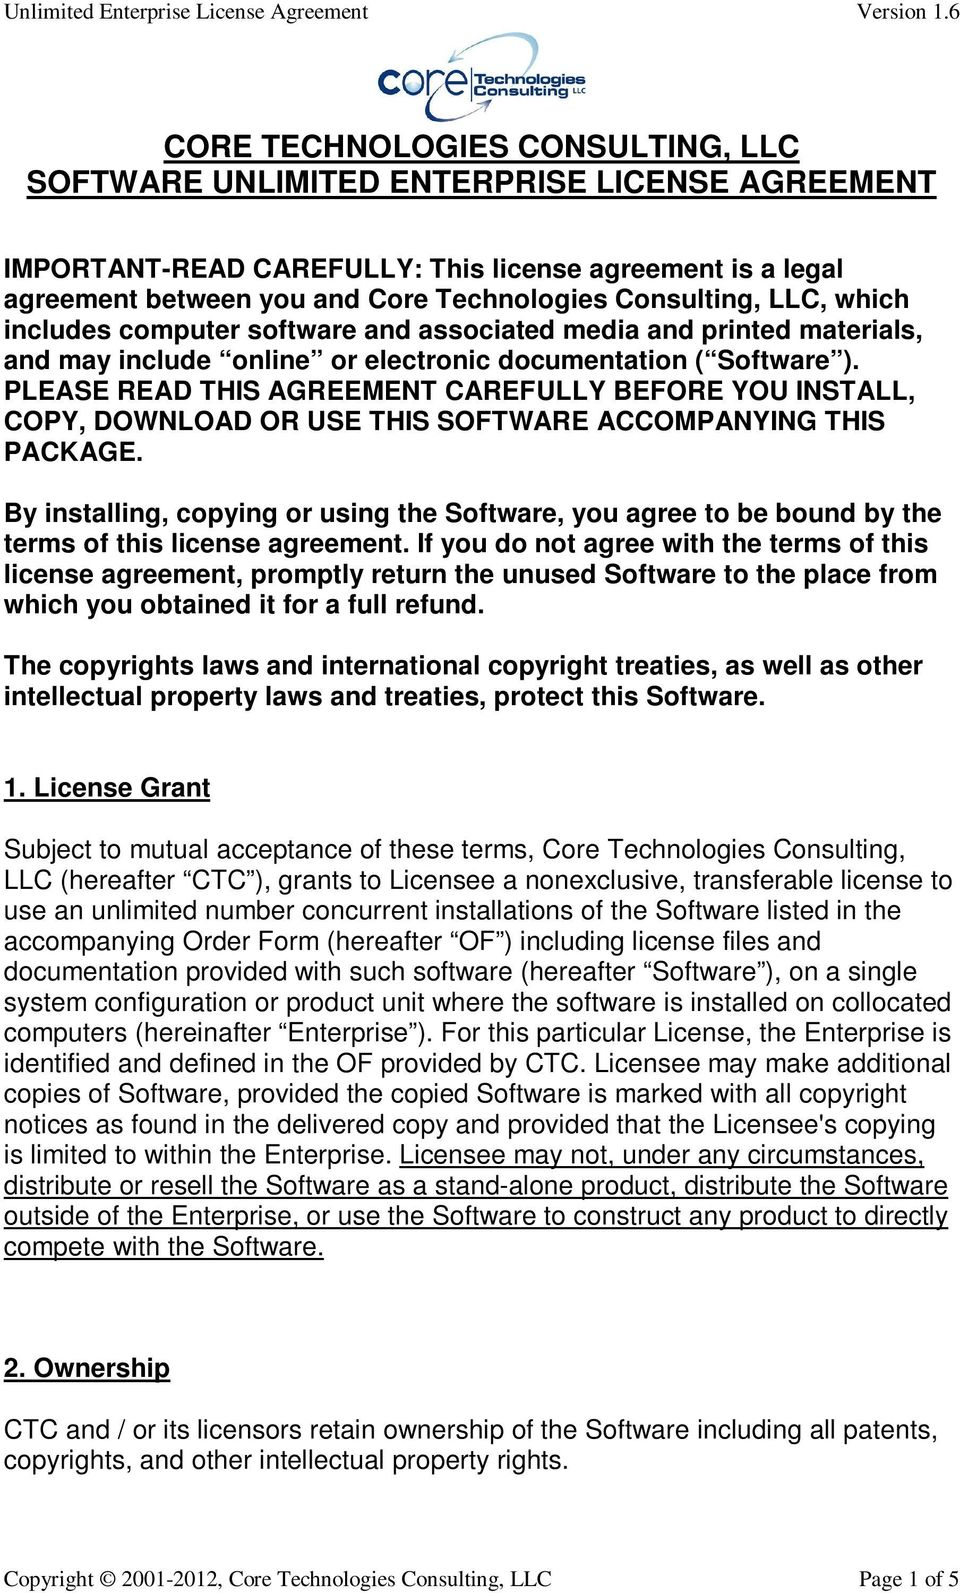 PLEASE READ THIS AGREEMENT CAREFULLY BEFORE YOU INSTALL, COPY, DOWNLOAD OR USE THIS SOFTWARE ACCOMPANYING THIS PACKAGE.